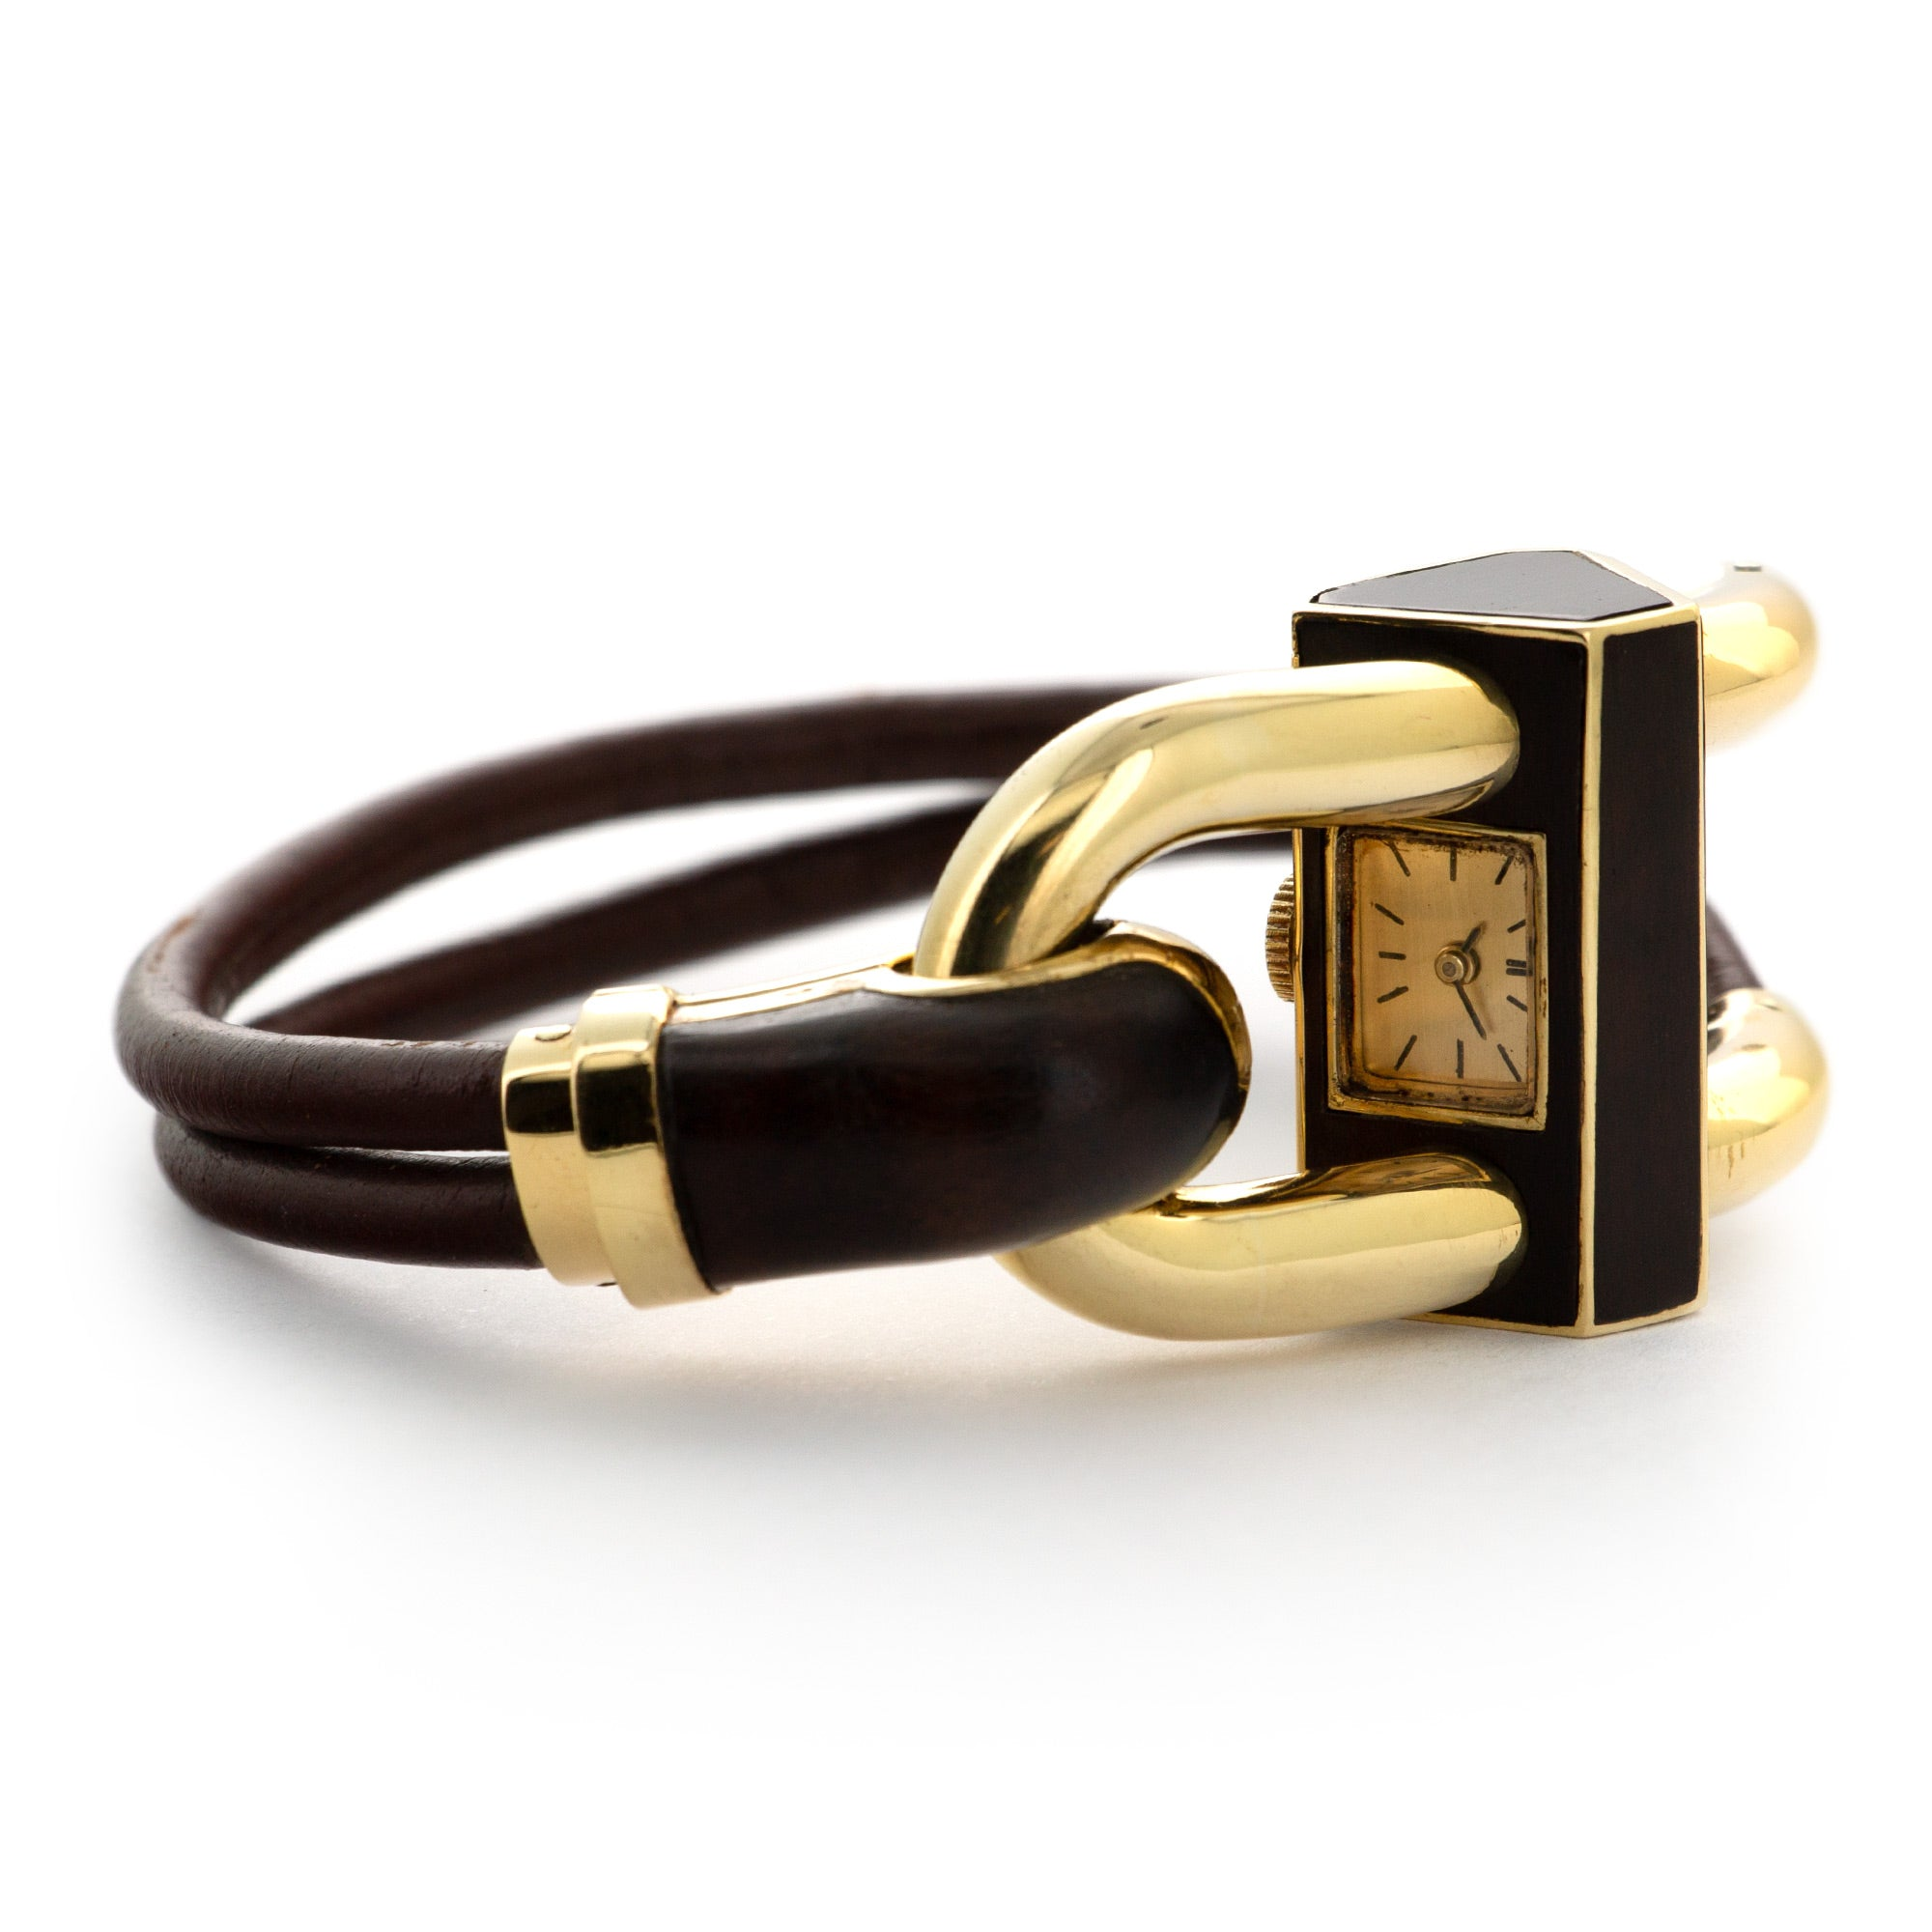 Van Cleef & Arpels Candenas N/A 18k YG  Excellent Ladies 18k YG Gold with Wood 27mm Manual 1970s Brown Leather Strap Leather Travel Case